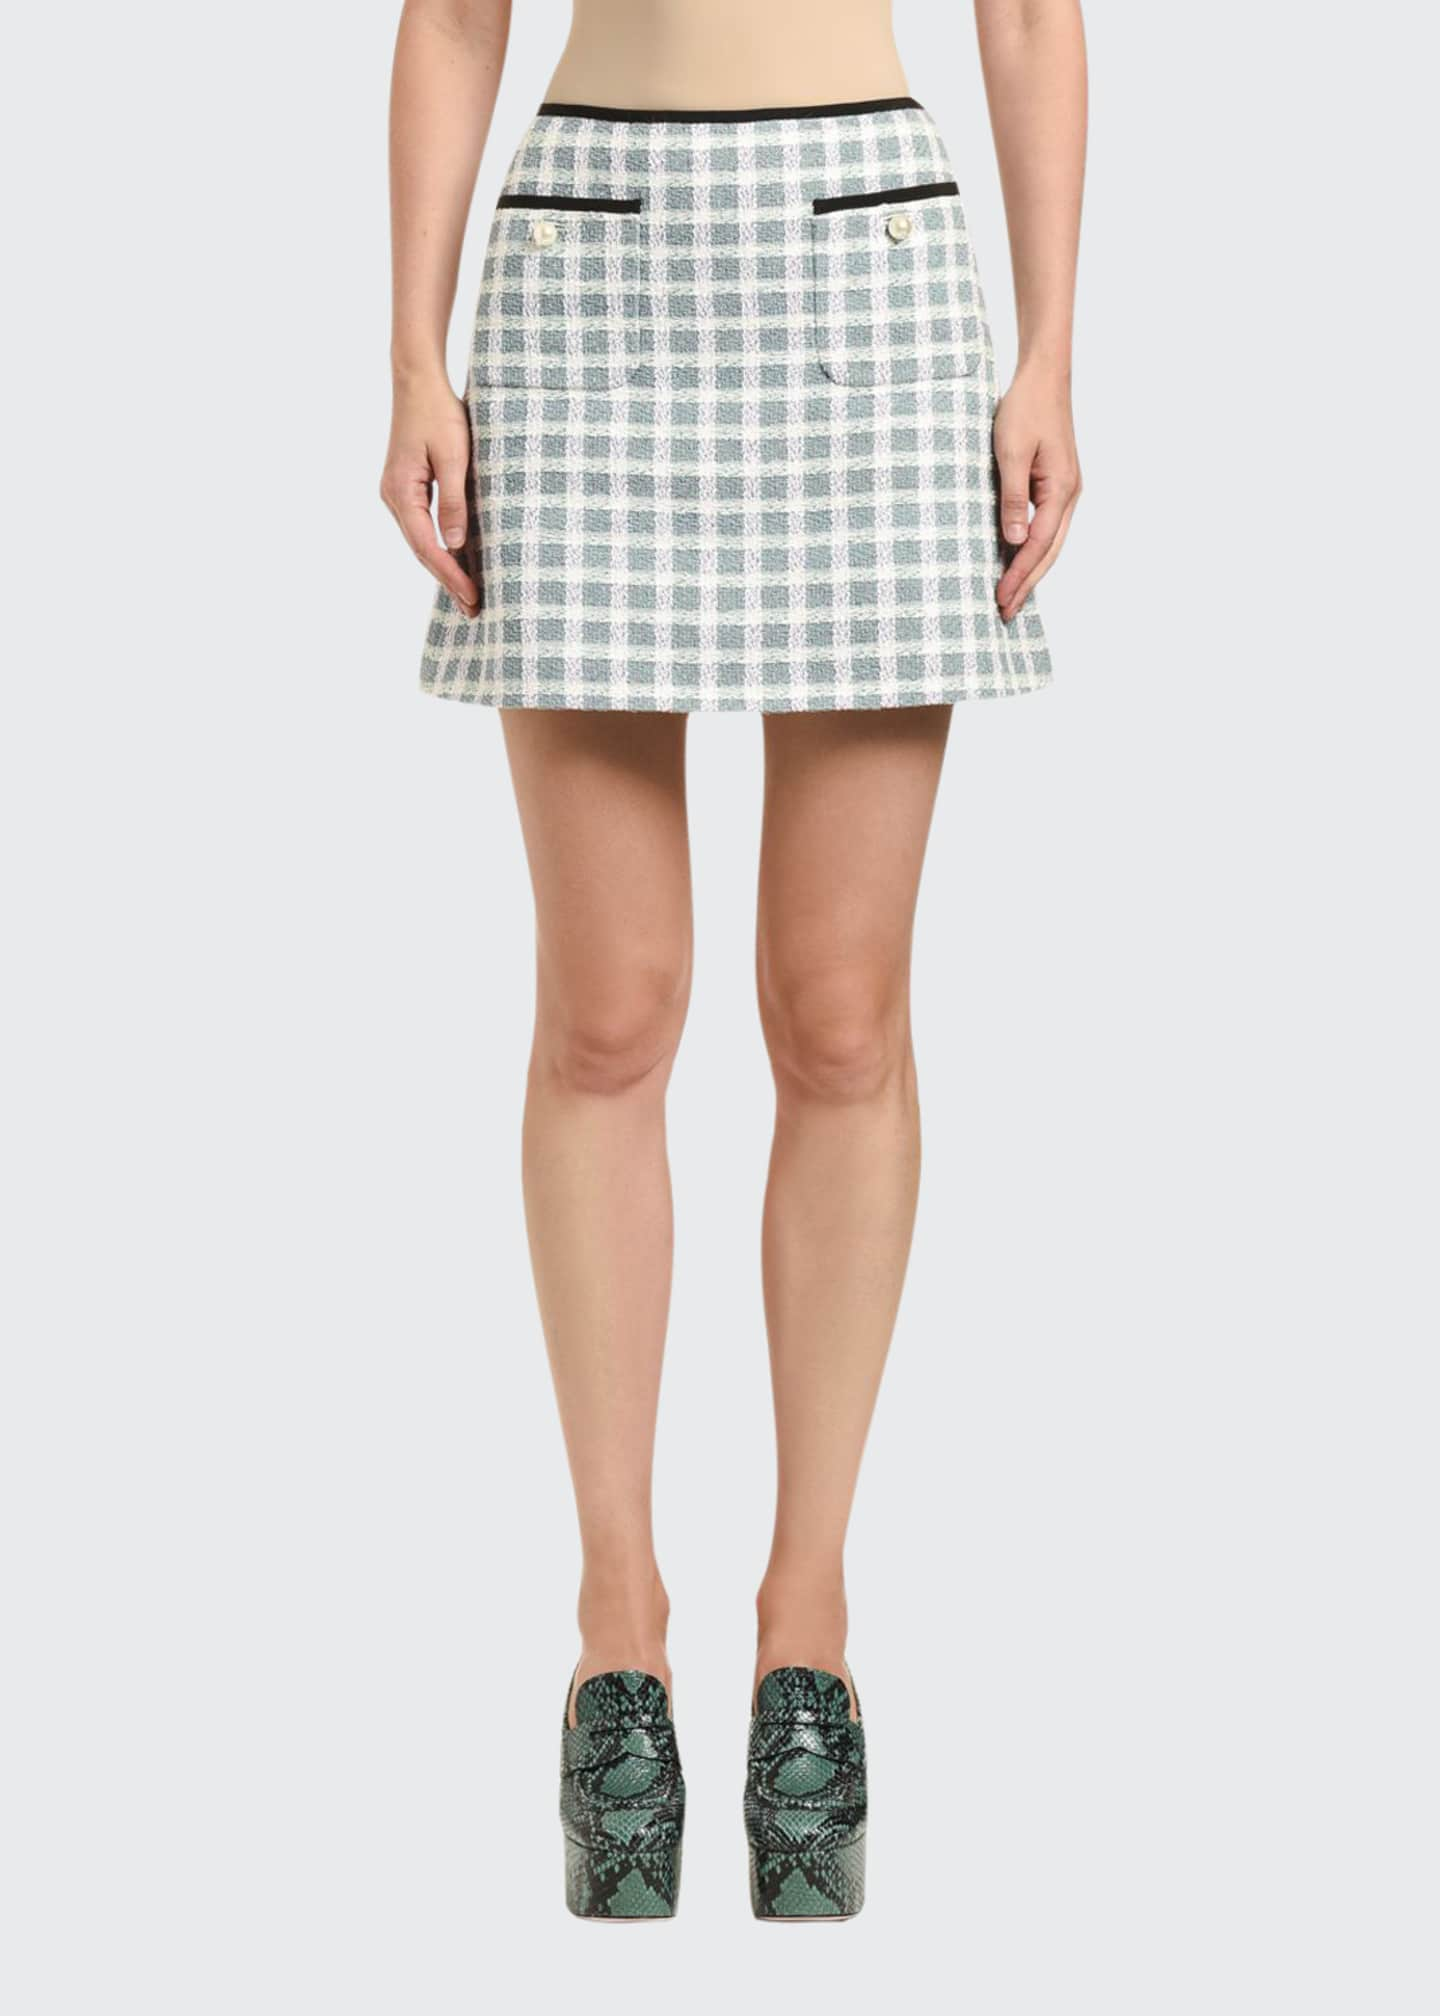 Miu Miu Gonne Tweed Plaid Mini Skirt w/